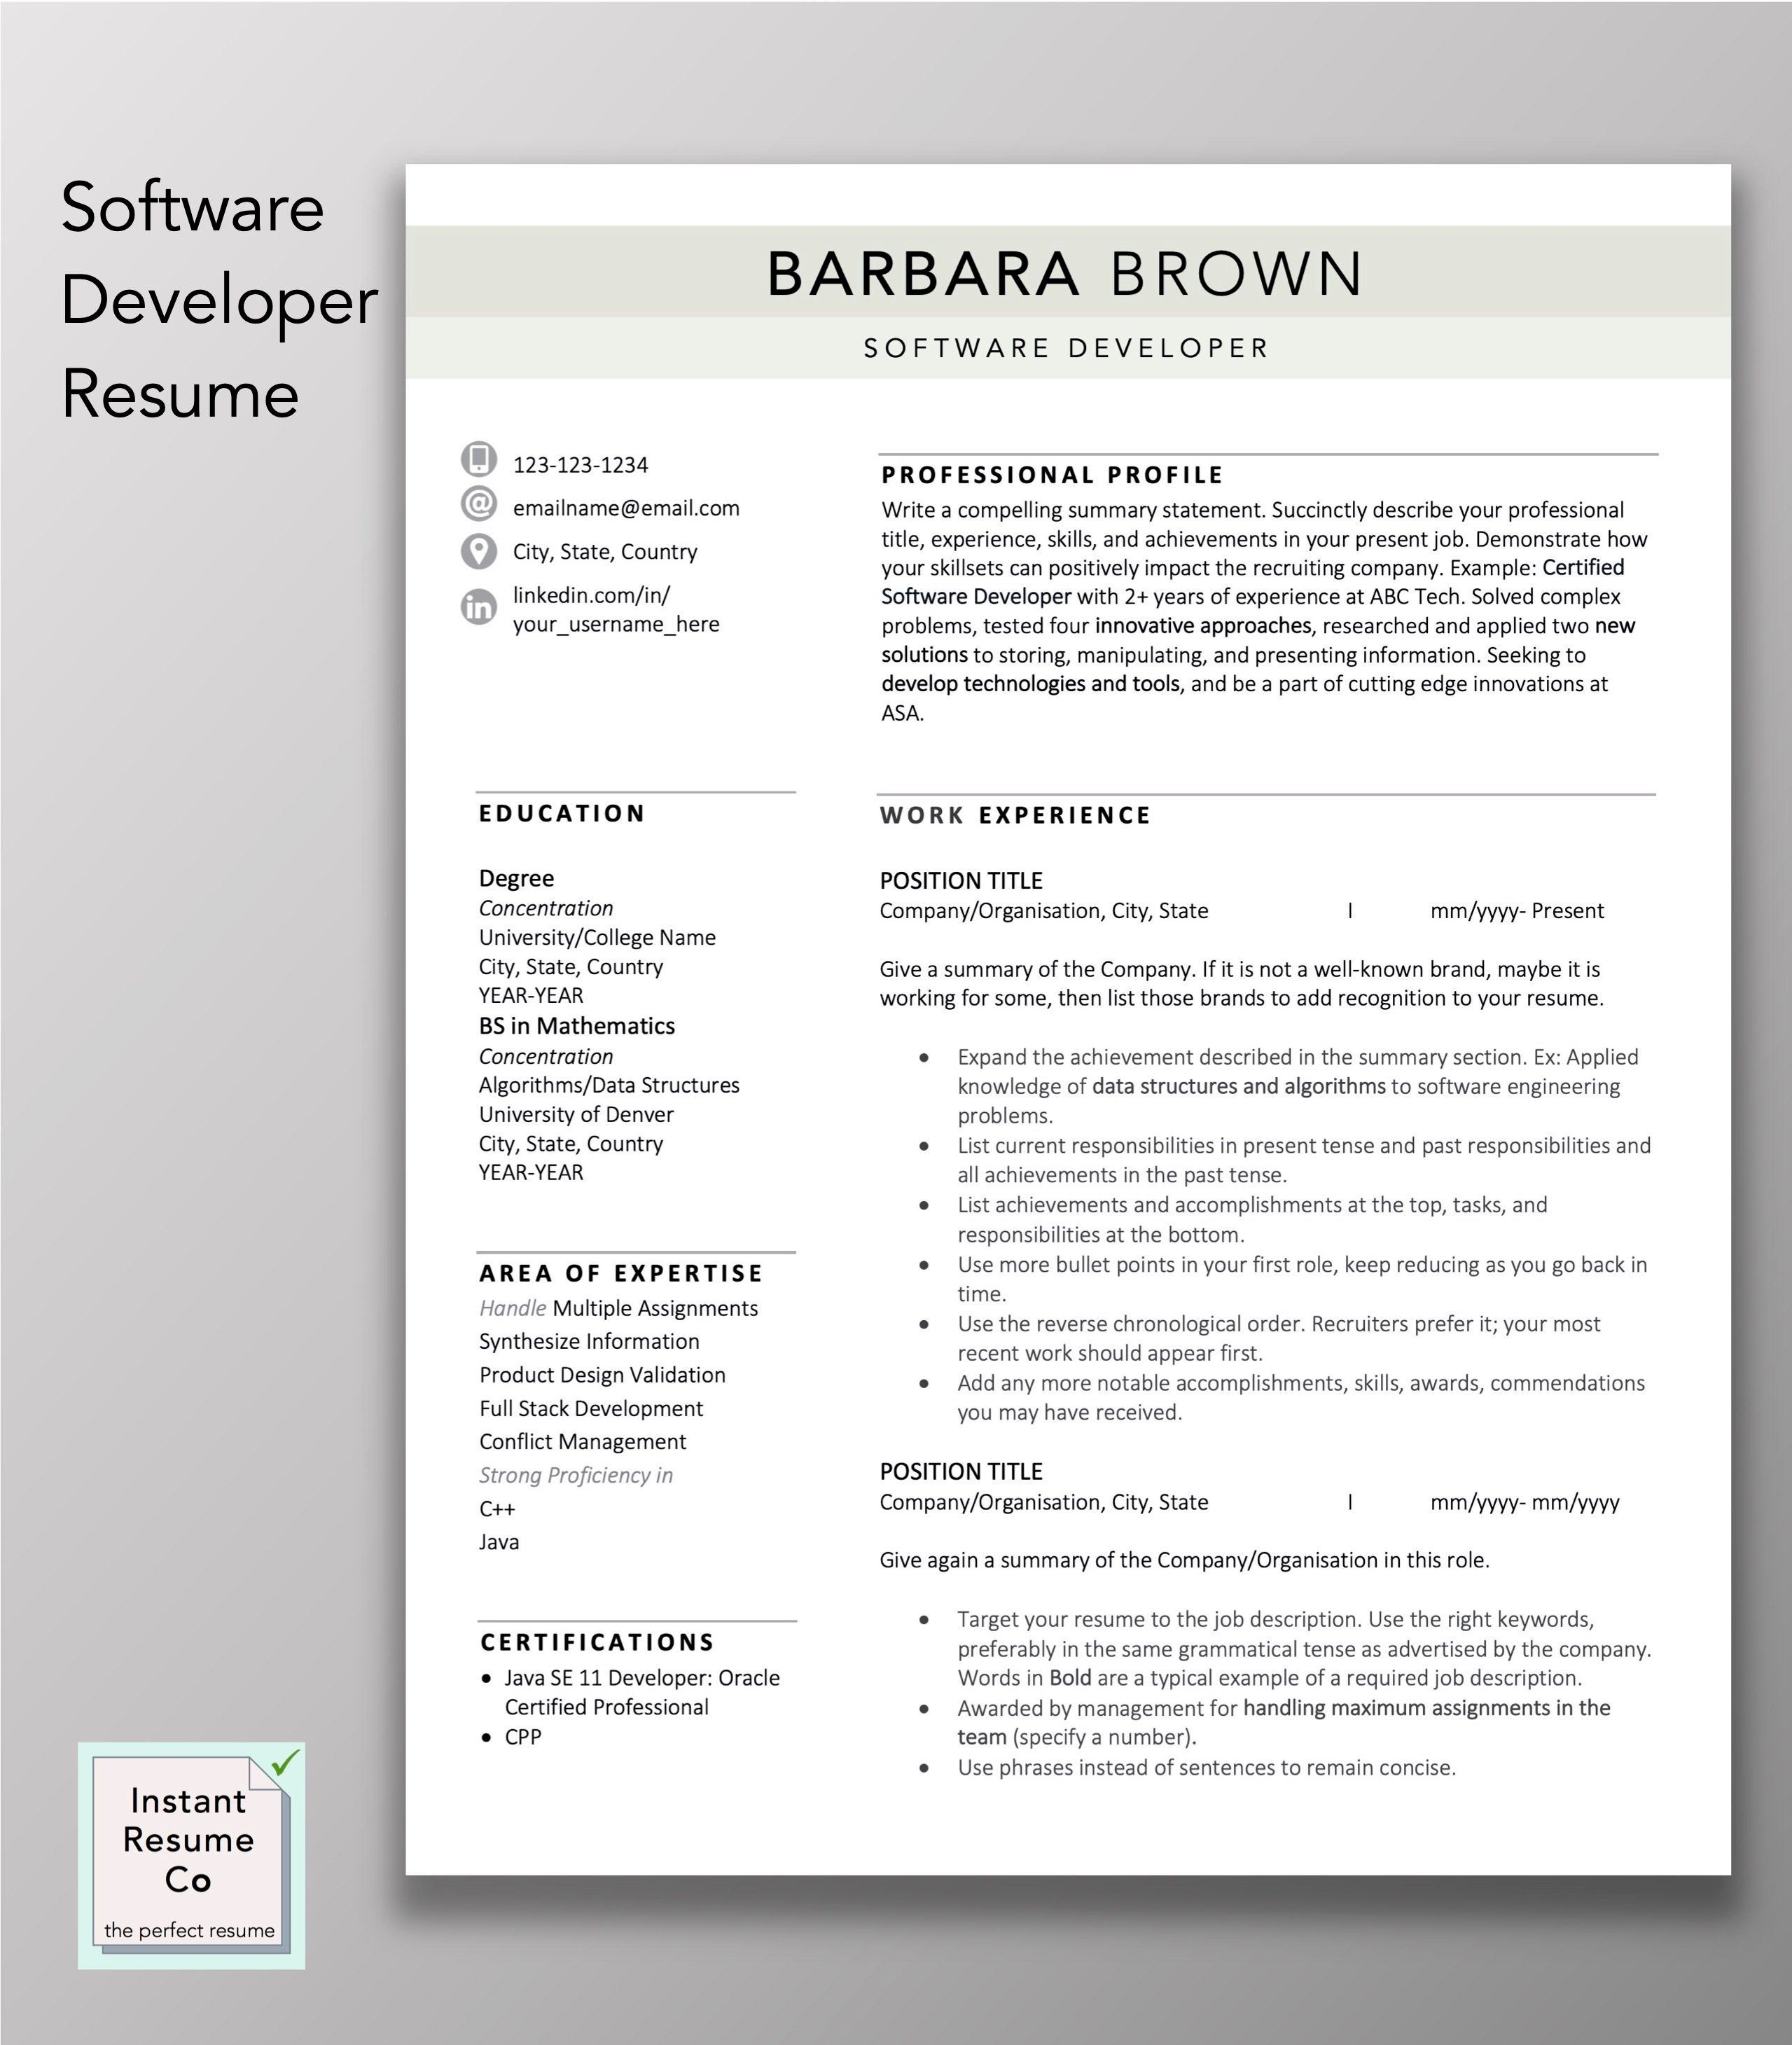 Software Developer Resume 2 Page Professional Resume Cv Template Word Cover Letter Editable Software Engineer Resume Instant Download In 2021 Resume Cv Template Word Cv Template